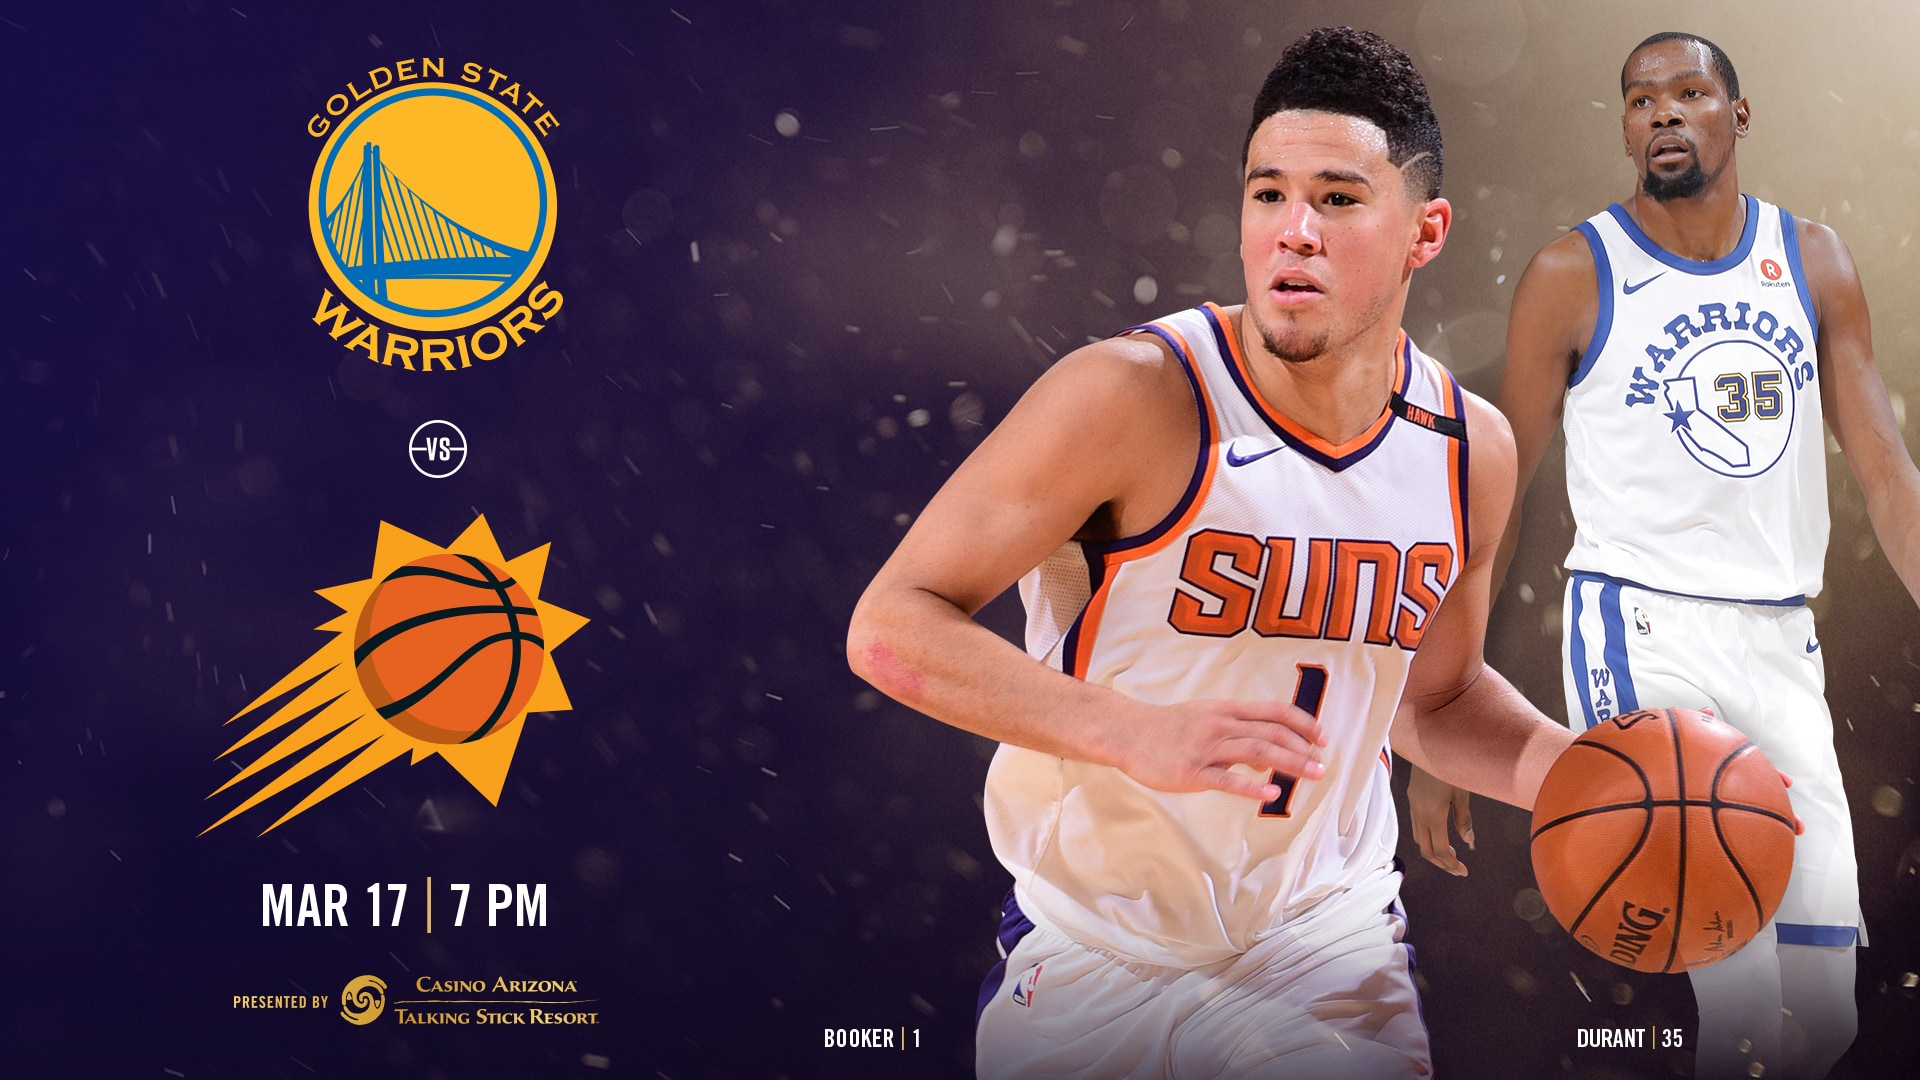 2 days ago· 2 days ago· buy and sell orlando vs san antonio at&t center tickets for october 20 at at&t center in san antonio, tx at stubhub! Promotional Calendar | Phoenix Suns